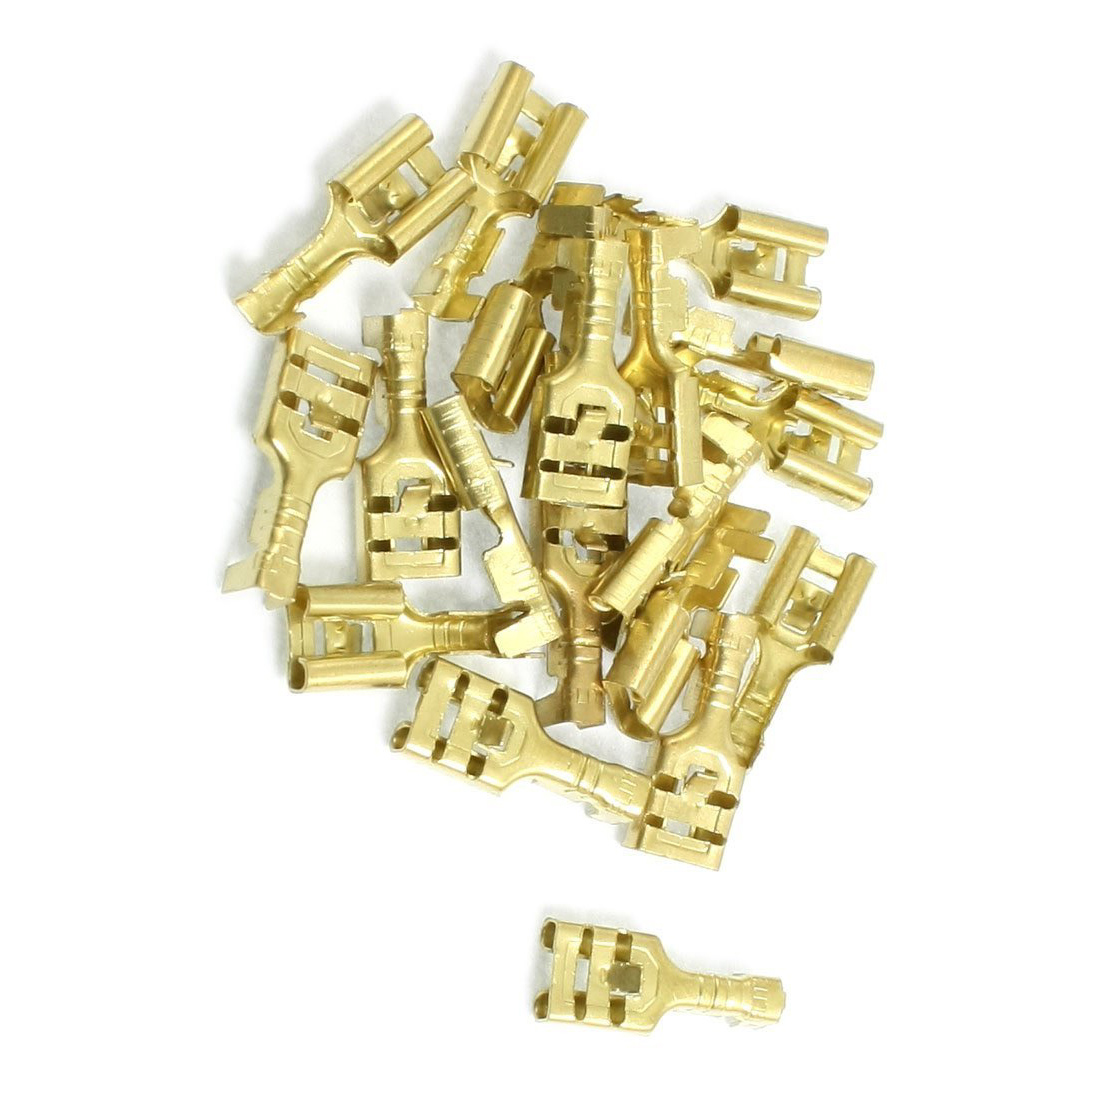 SZS Wholesale Brass 6.3 mm Connectors Female Spade Cable Terminals, 20 Piece(China (Mainland))